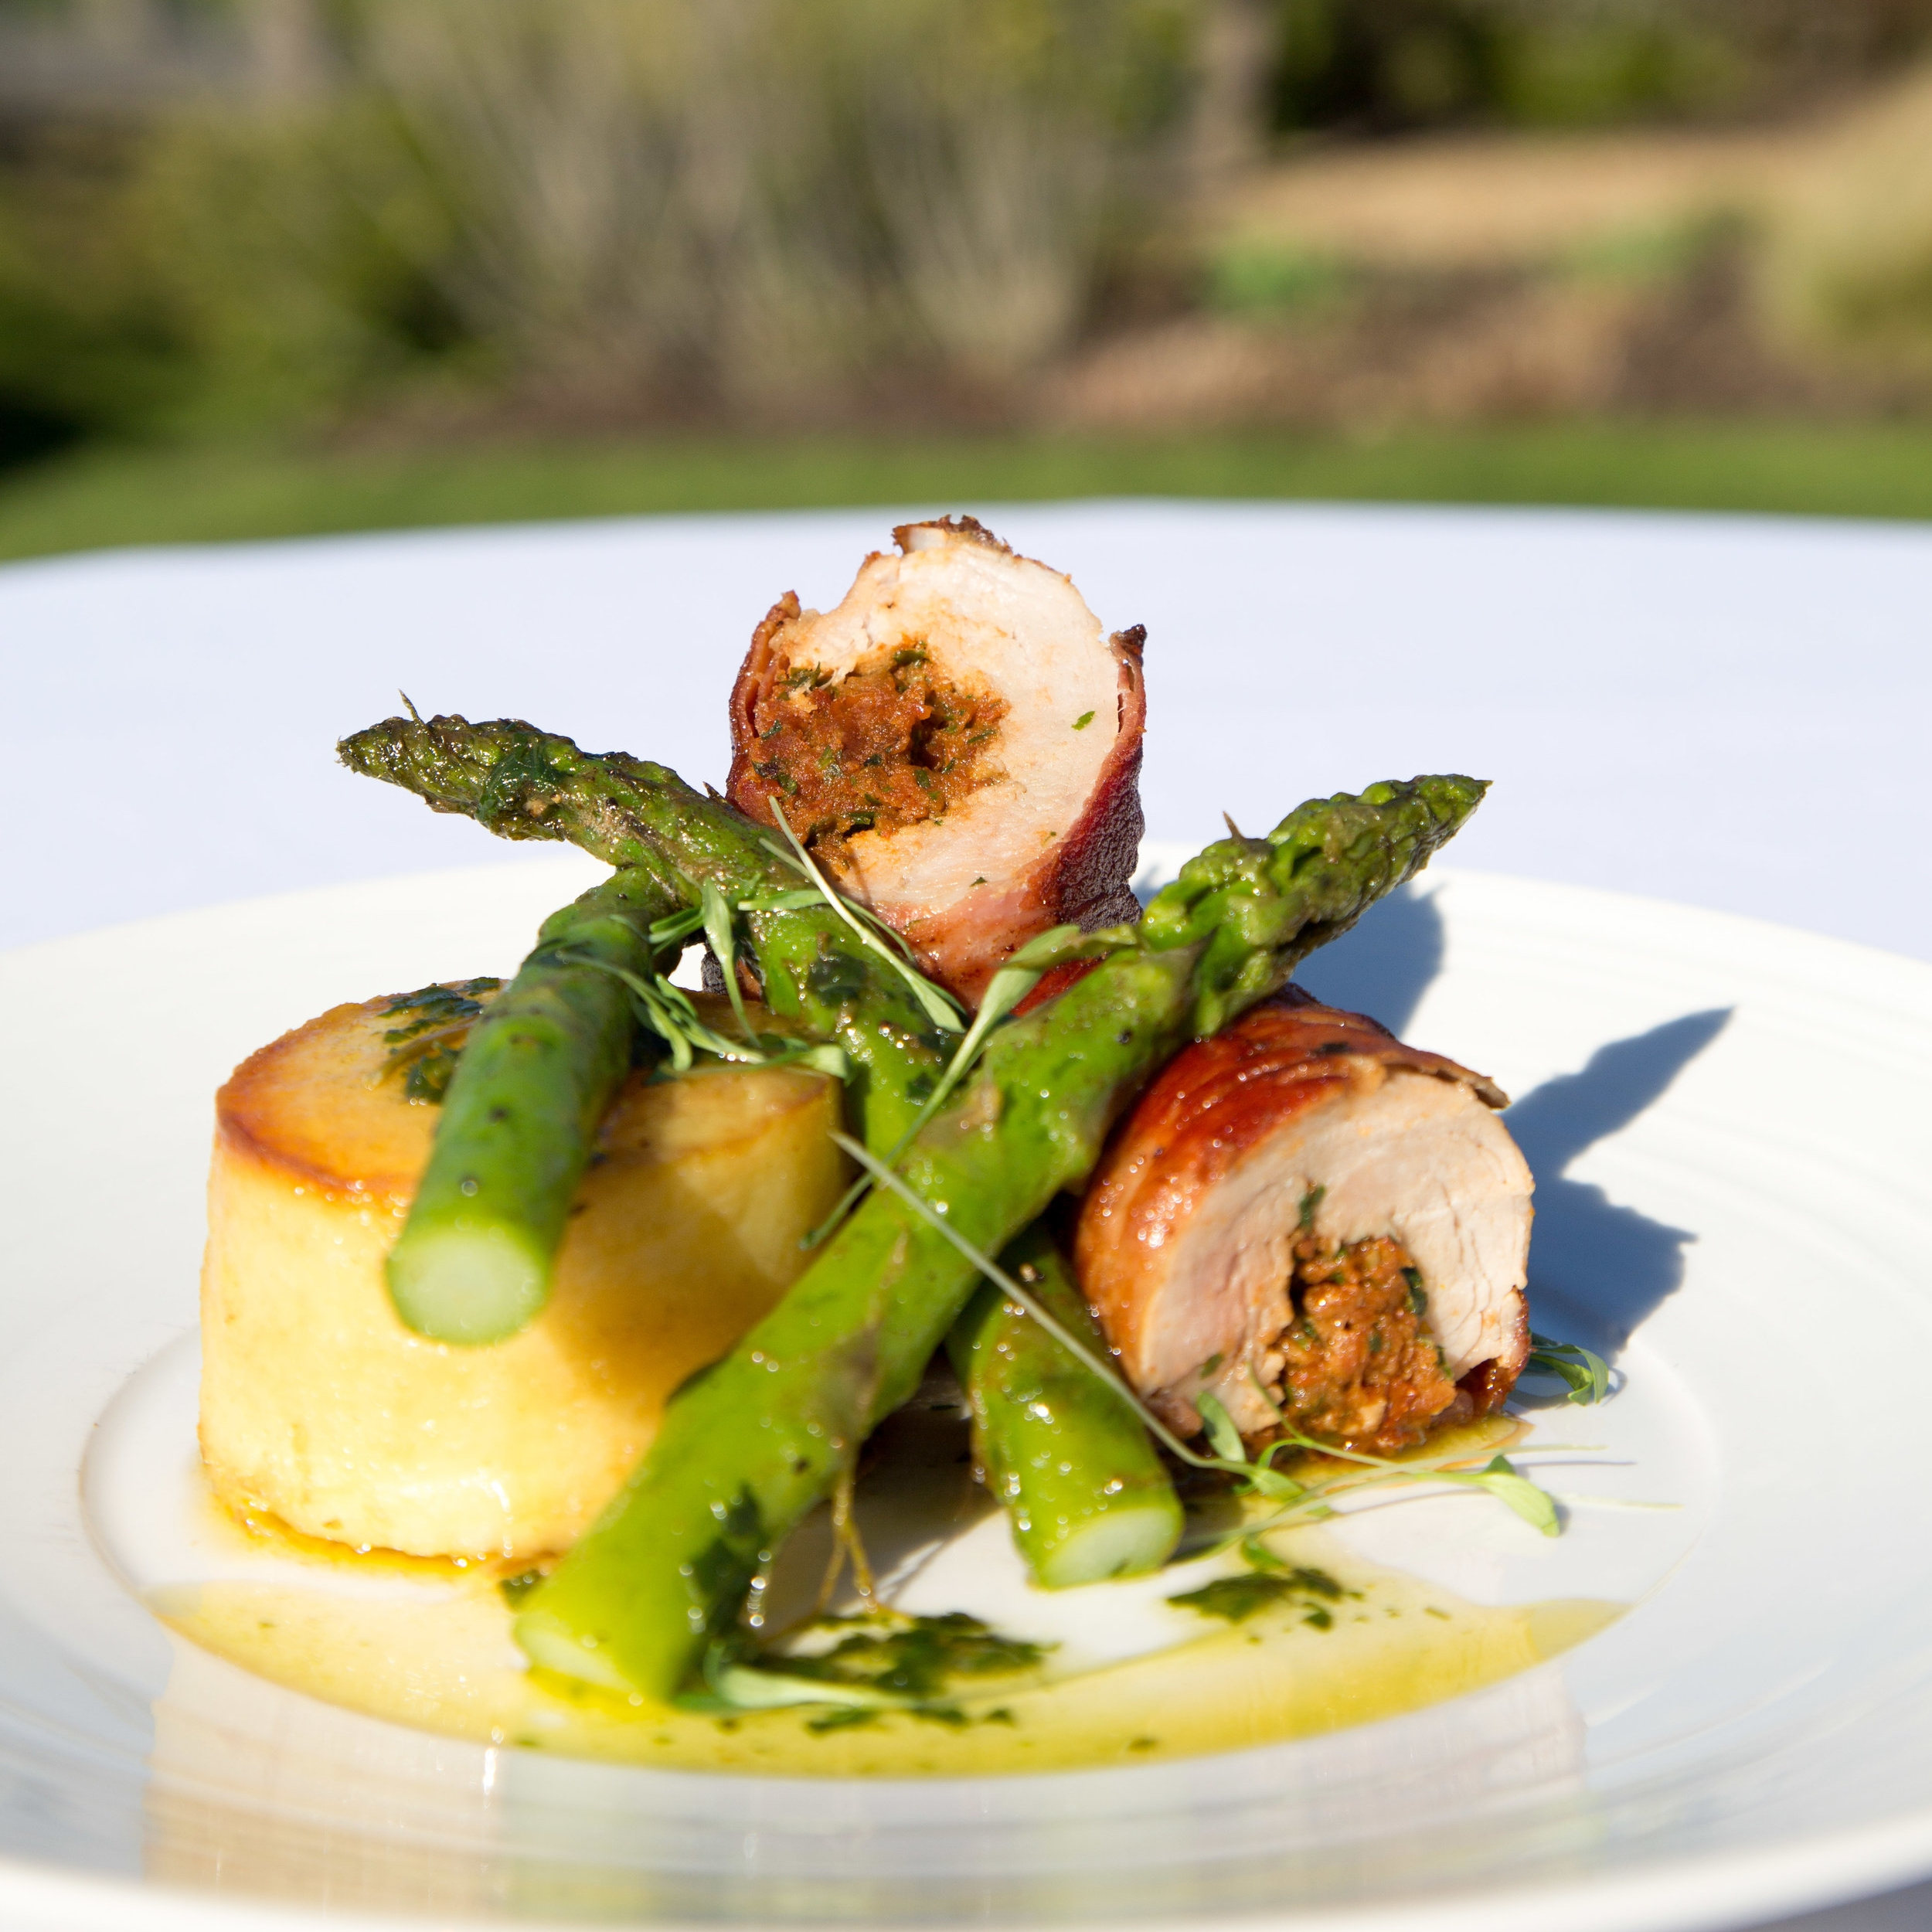 Stuffed pork fillet with asparagus